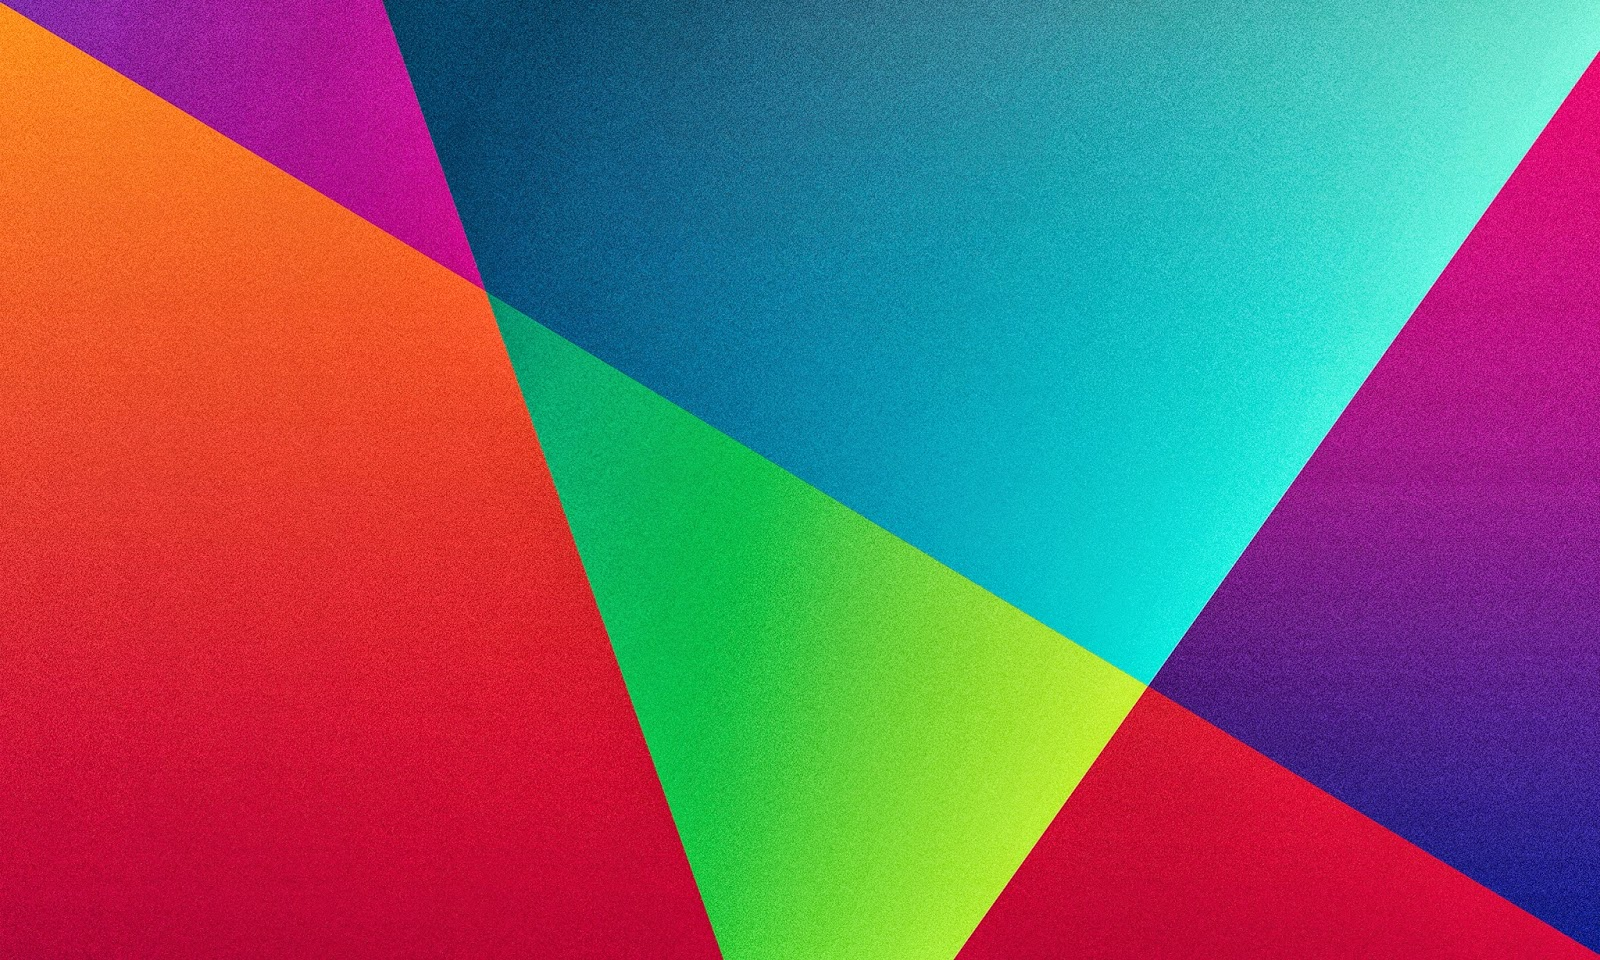 triangle abstract wallpapers hd - photo #11